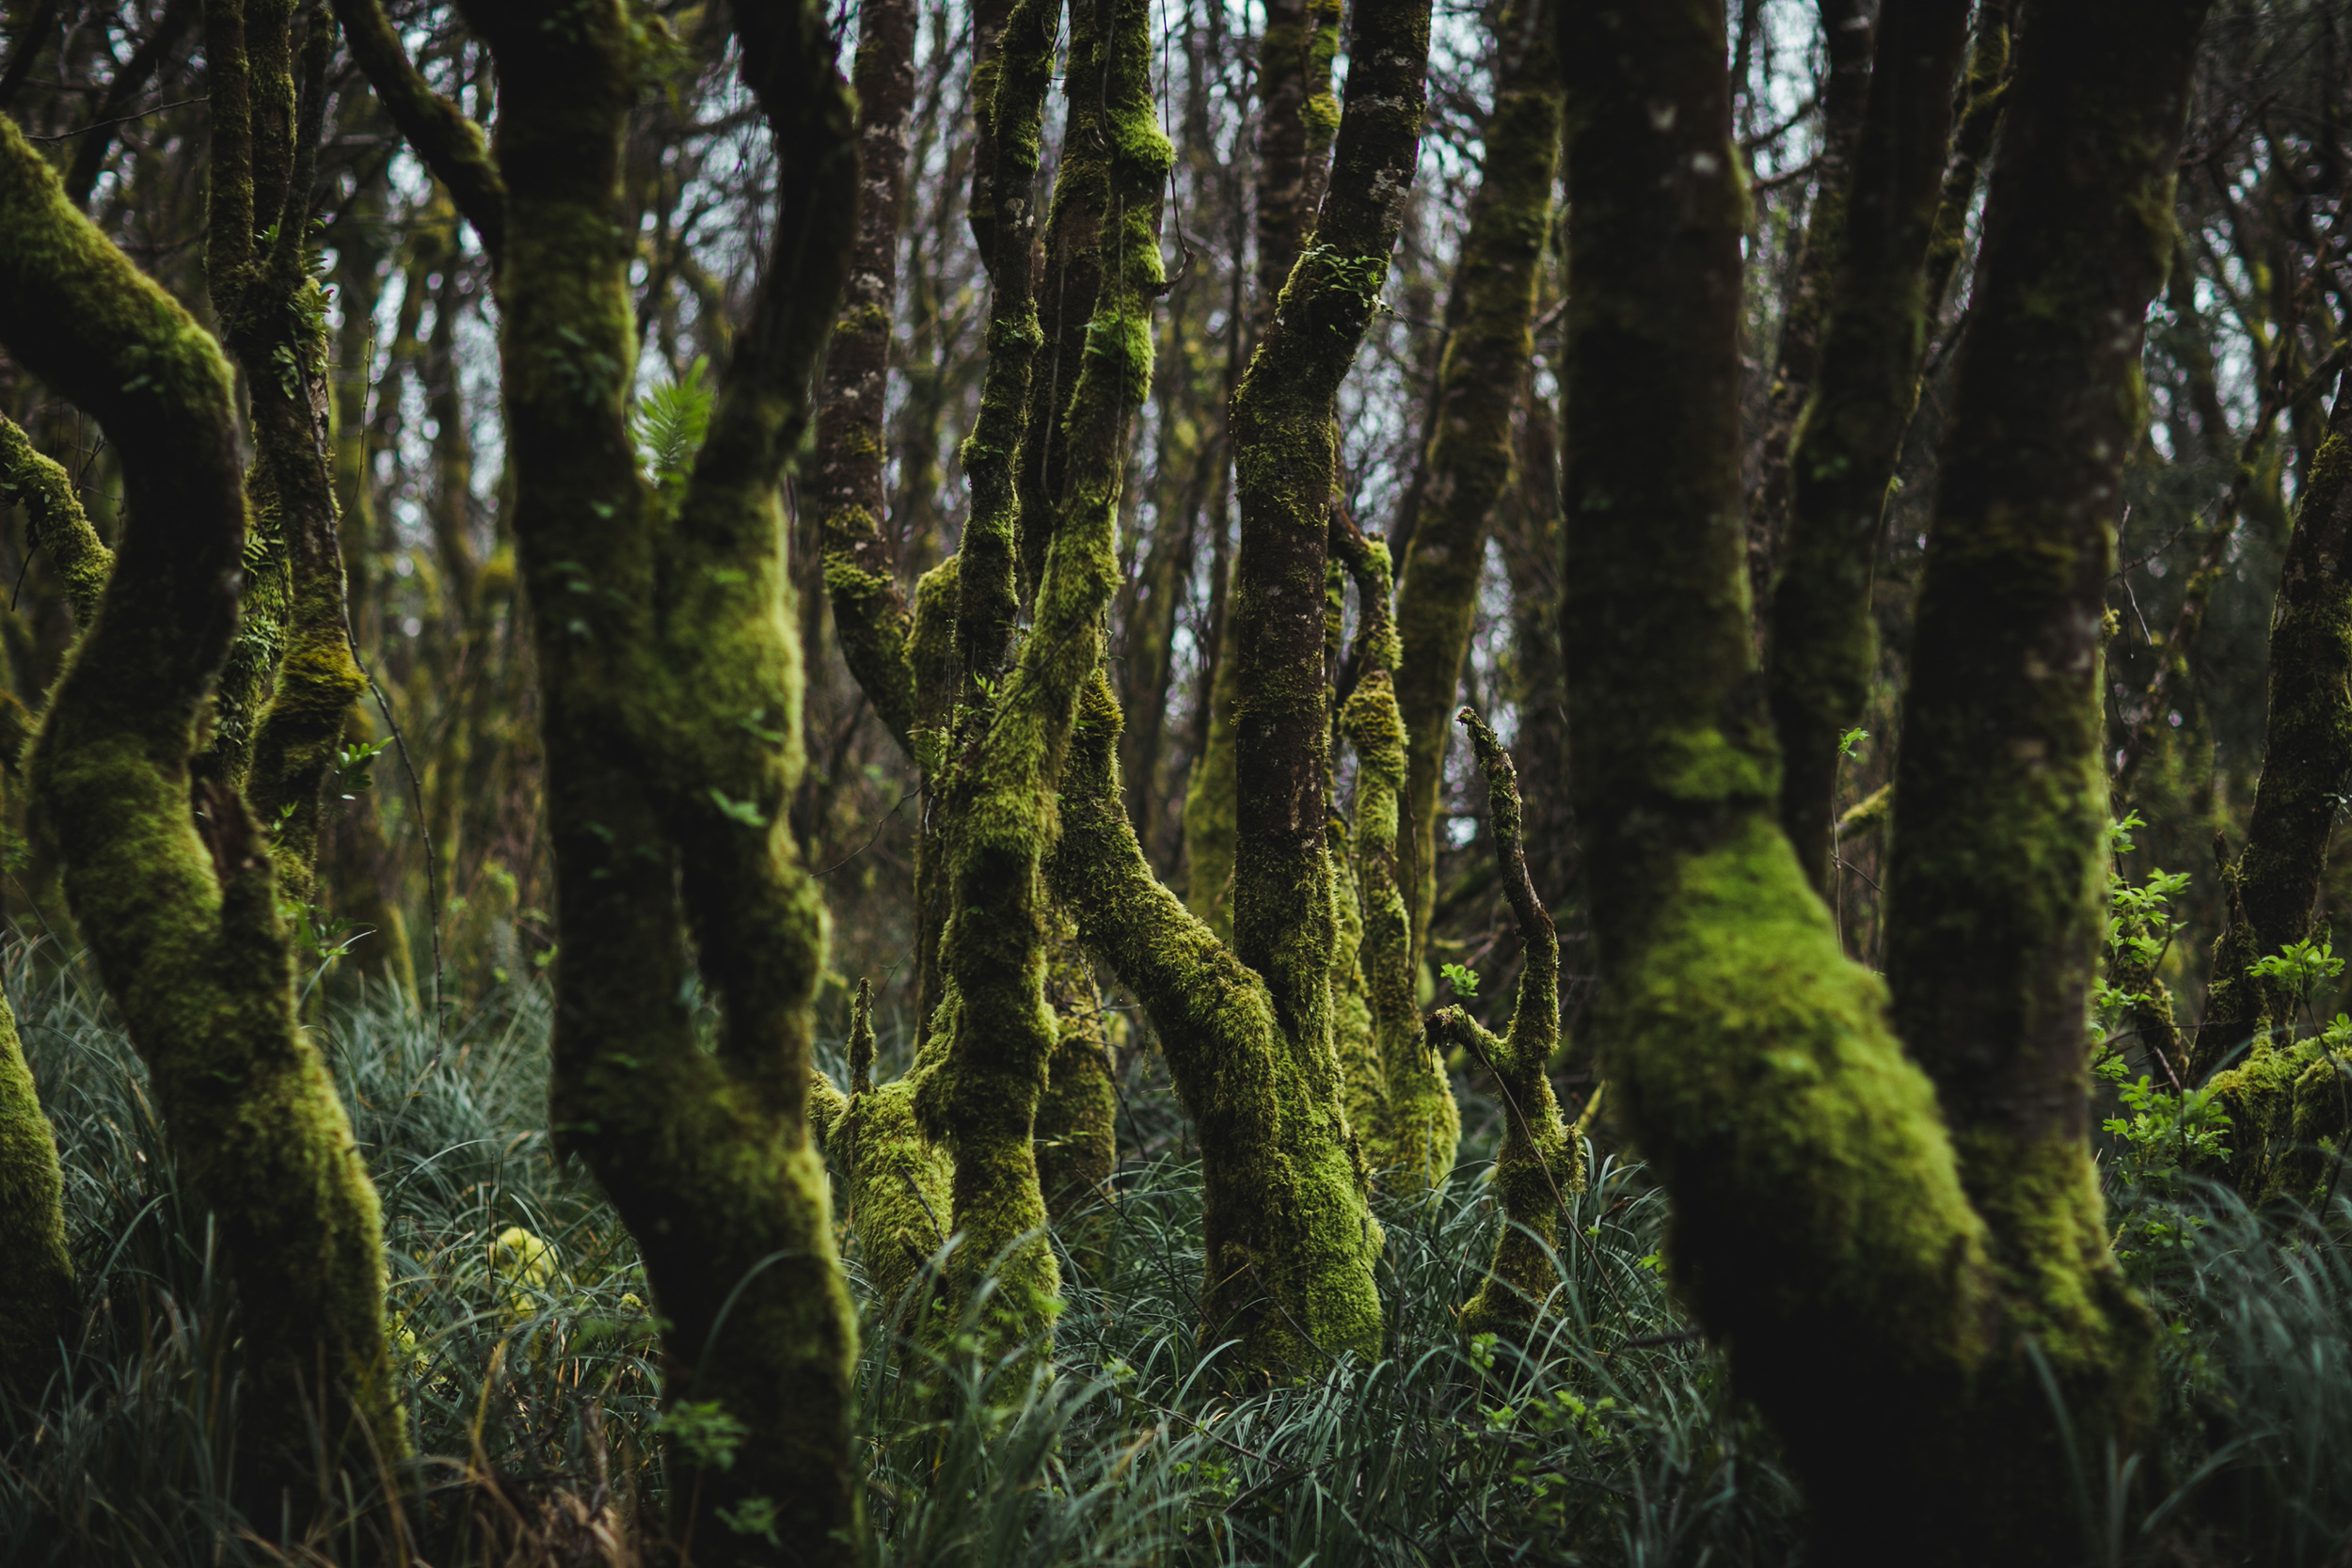 Moss Covered Trees - Orick, CA